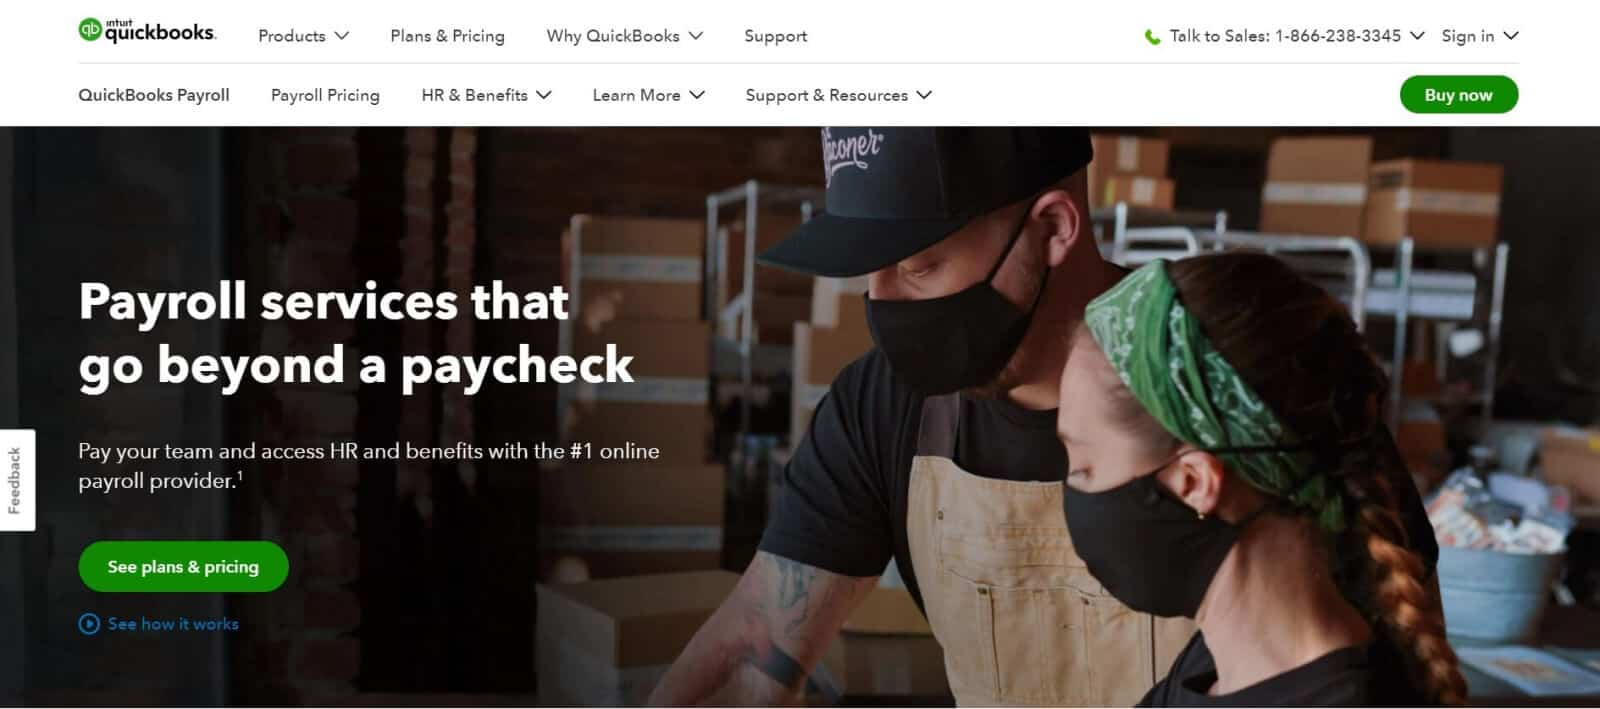 QuickBooks Payroll is the leading payroll management software